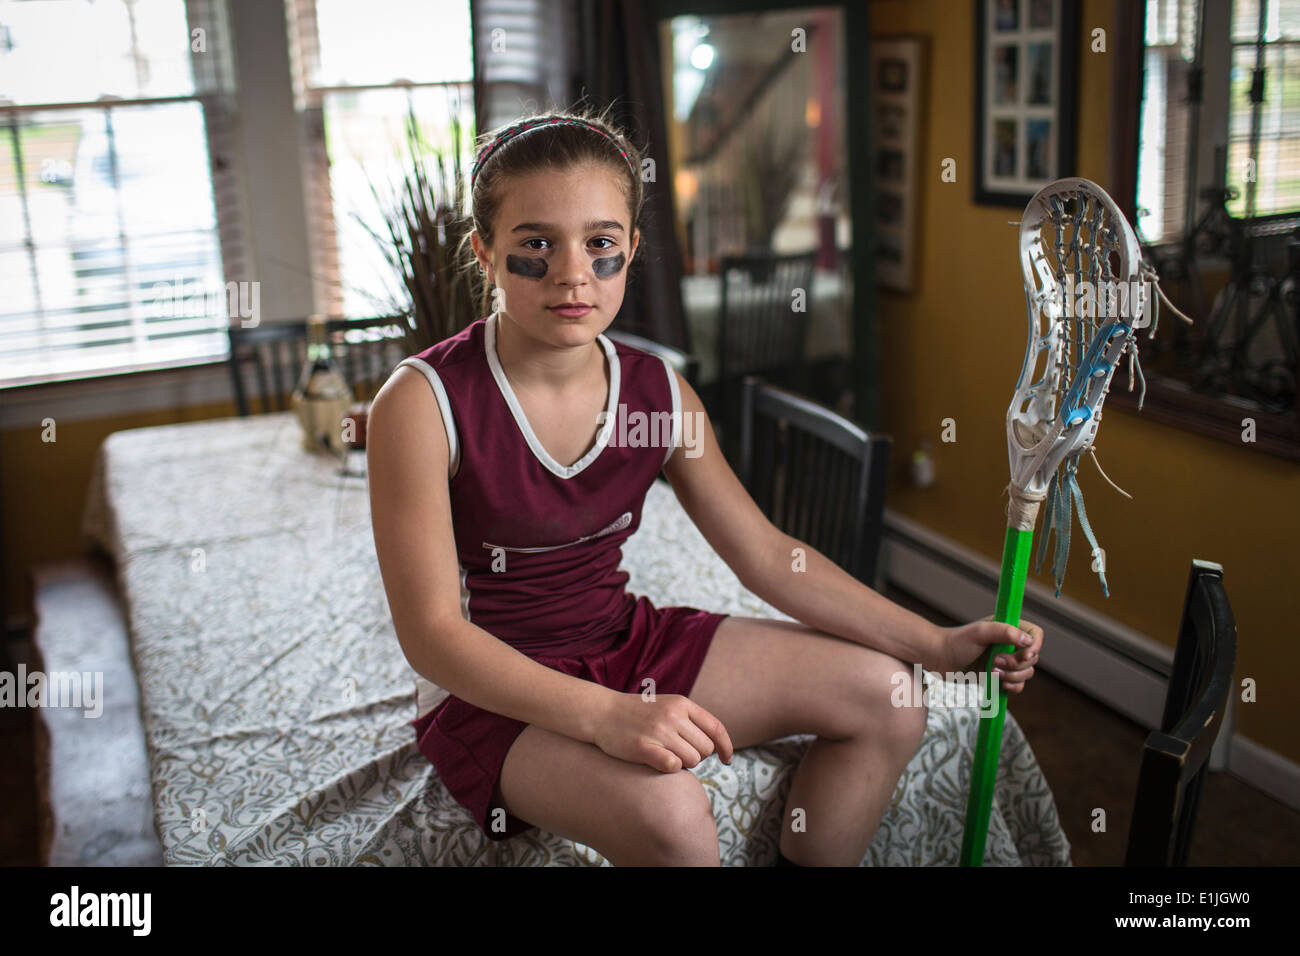 Girl wearing lacrosse uniform, sitting on dining table - Stock Image